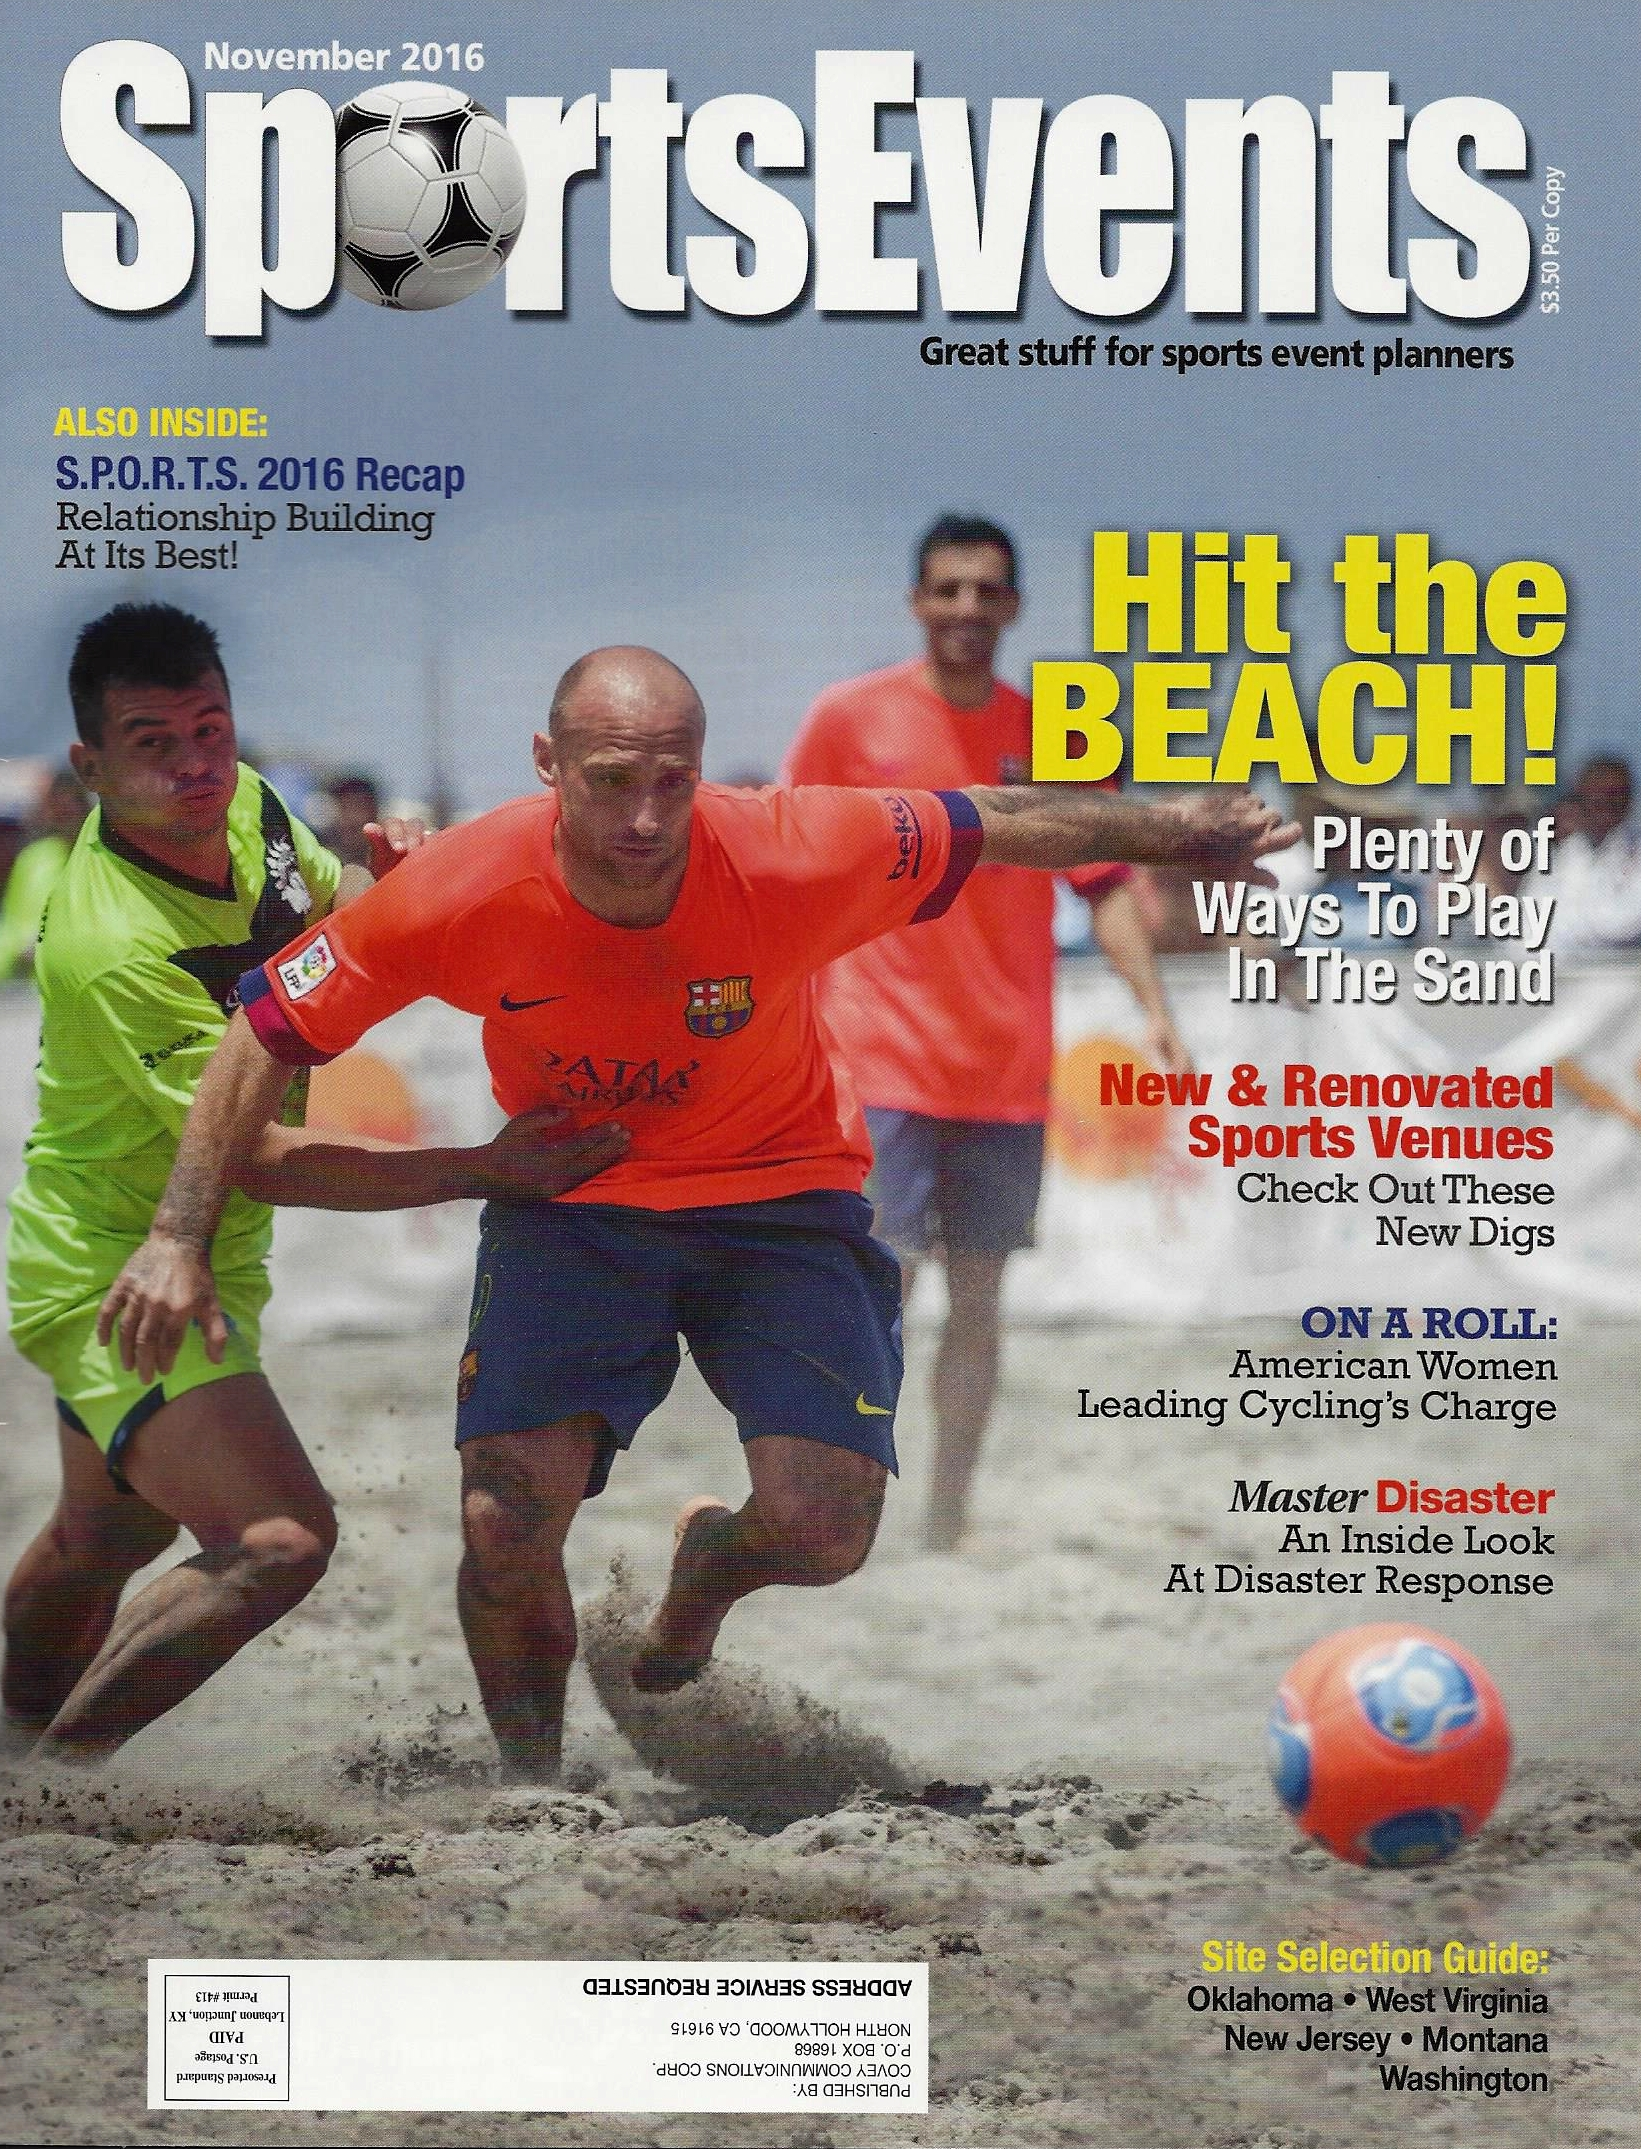 TFE Featured in Sports Events Magazine – Read All About It!